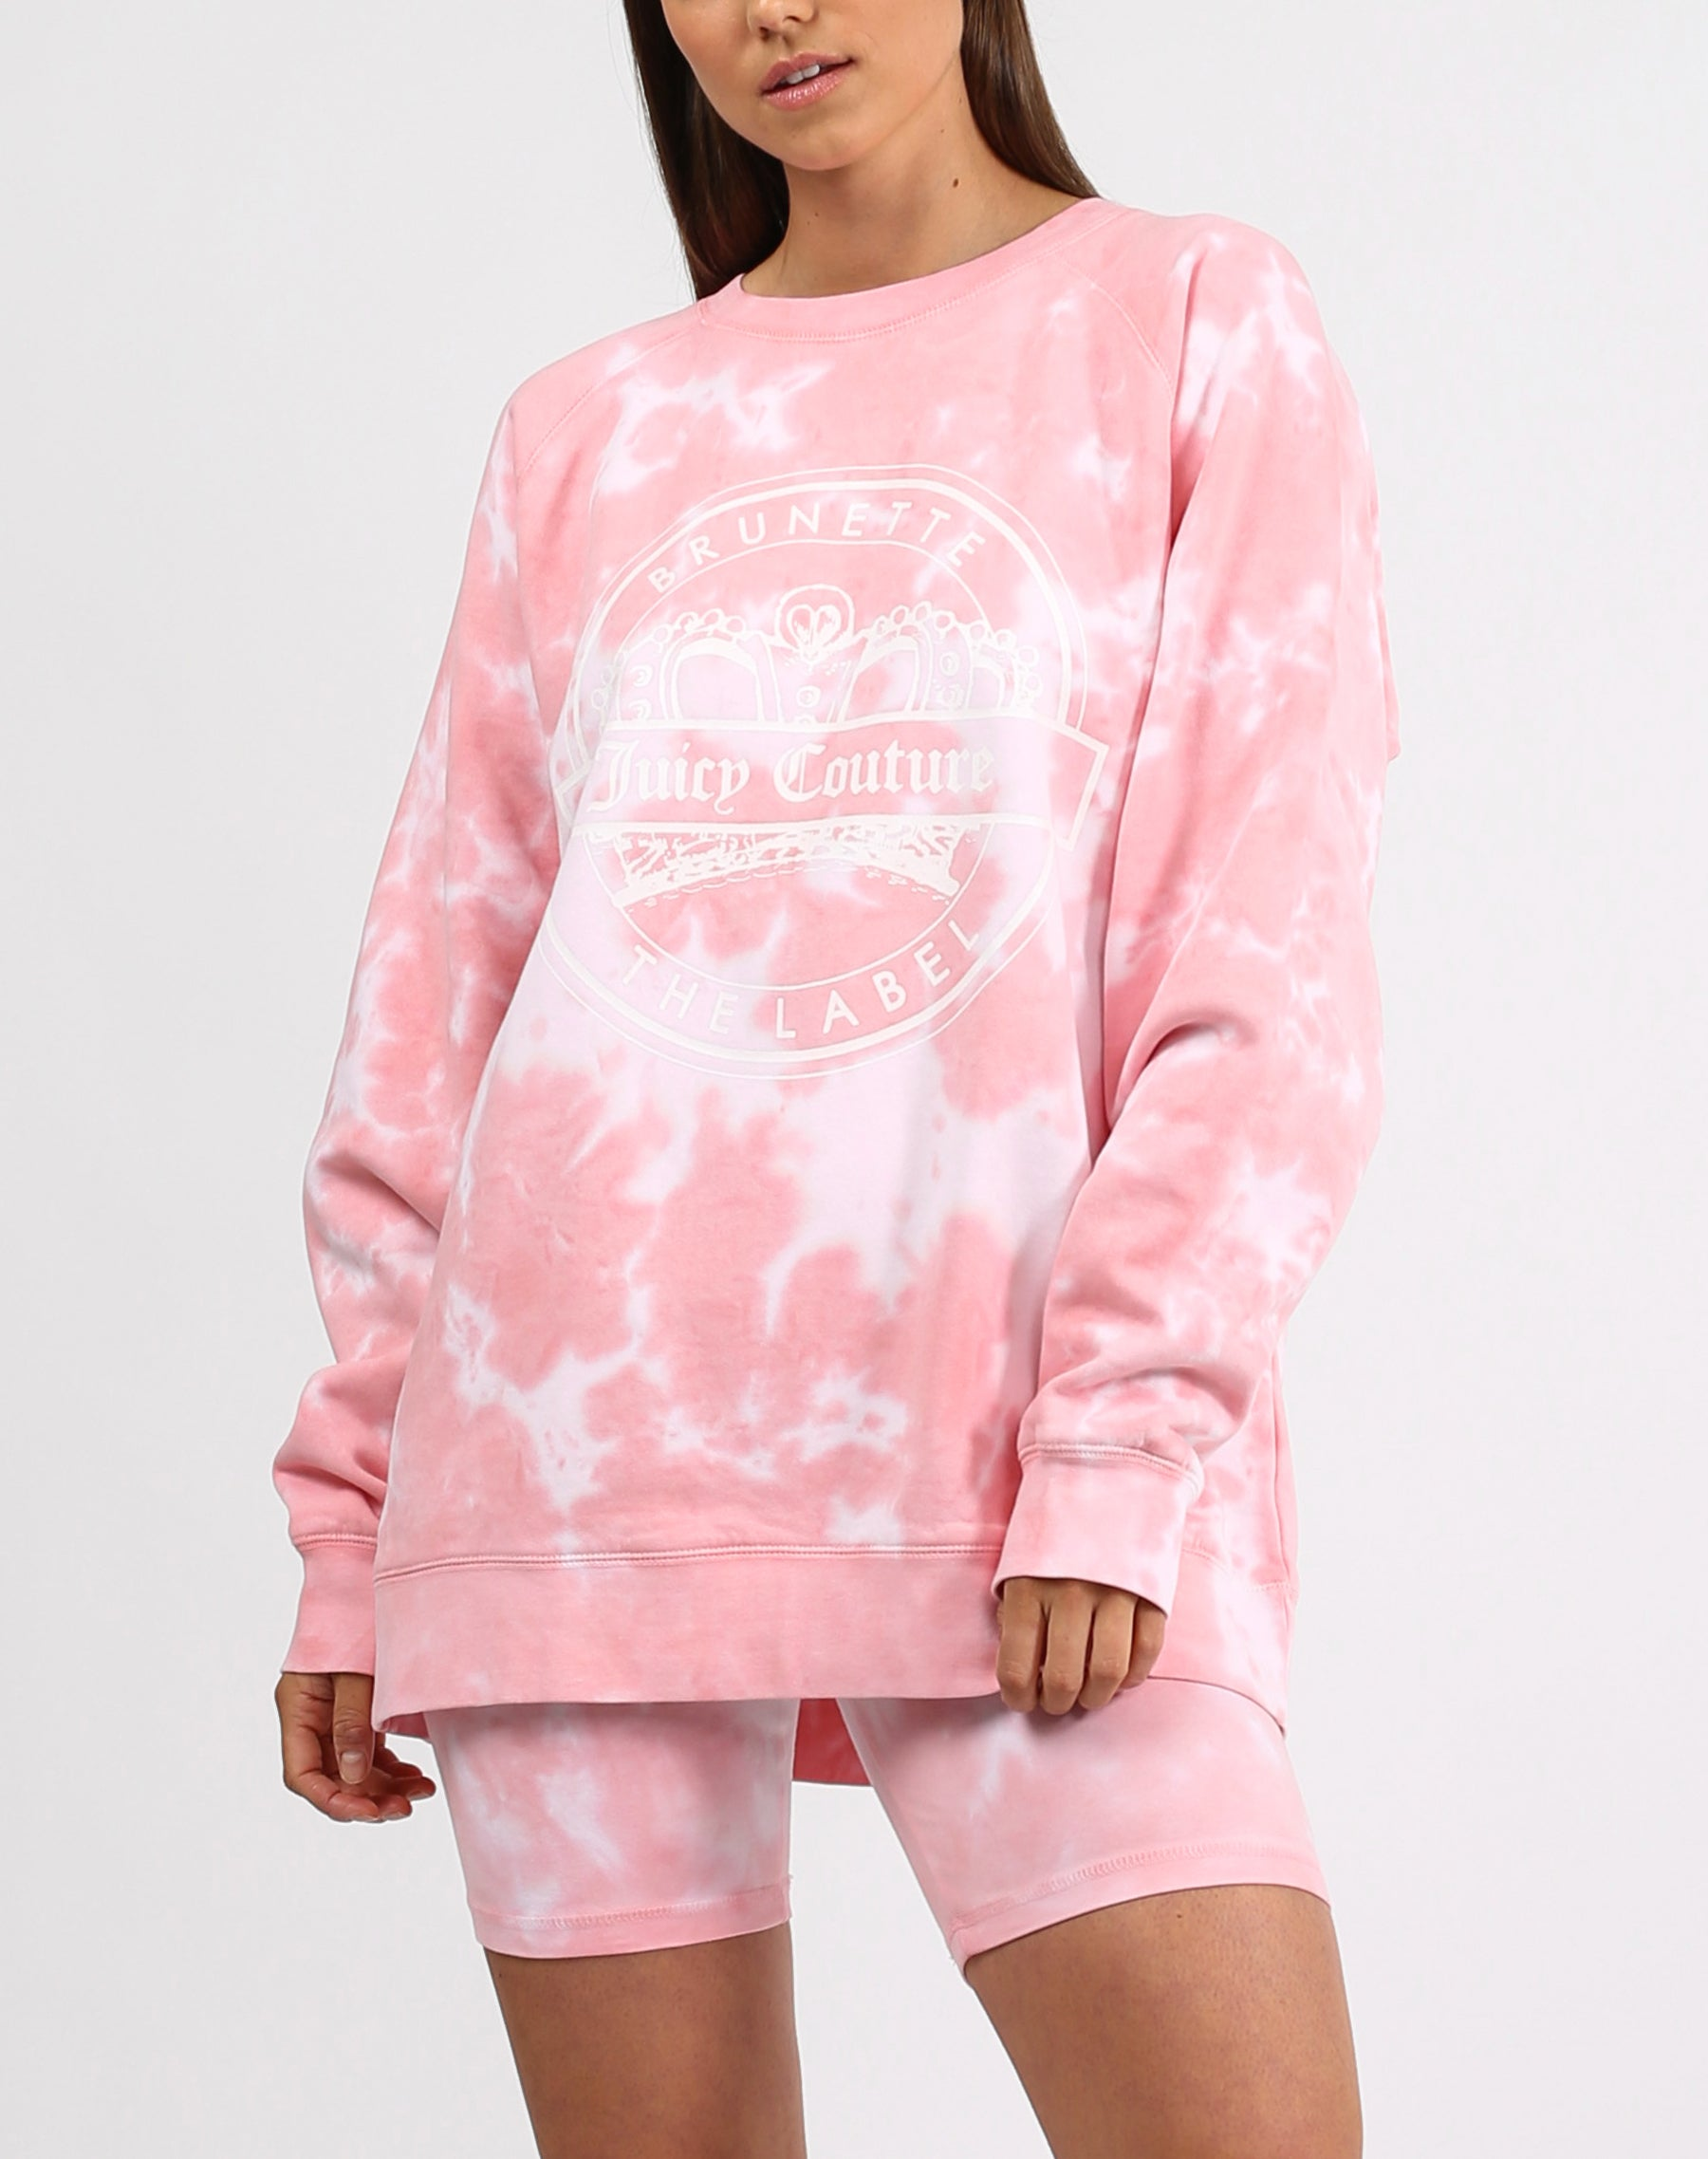 This is a photo of a model wearing the varsity big sister crew neck sweatshirt in pink marble by Brunette the Label x Juicy Couture.